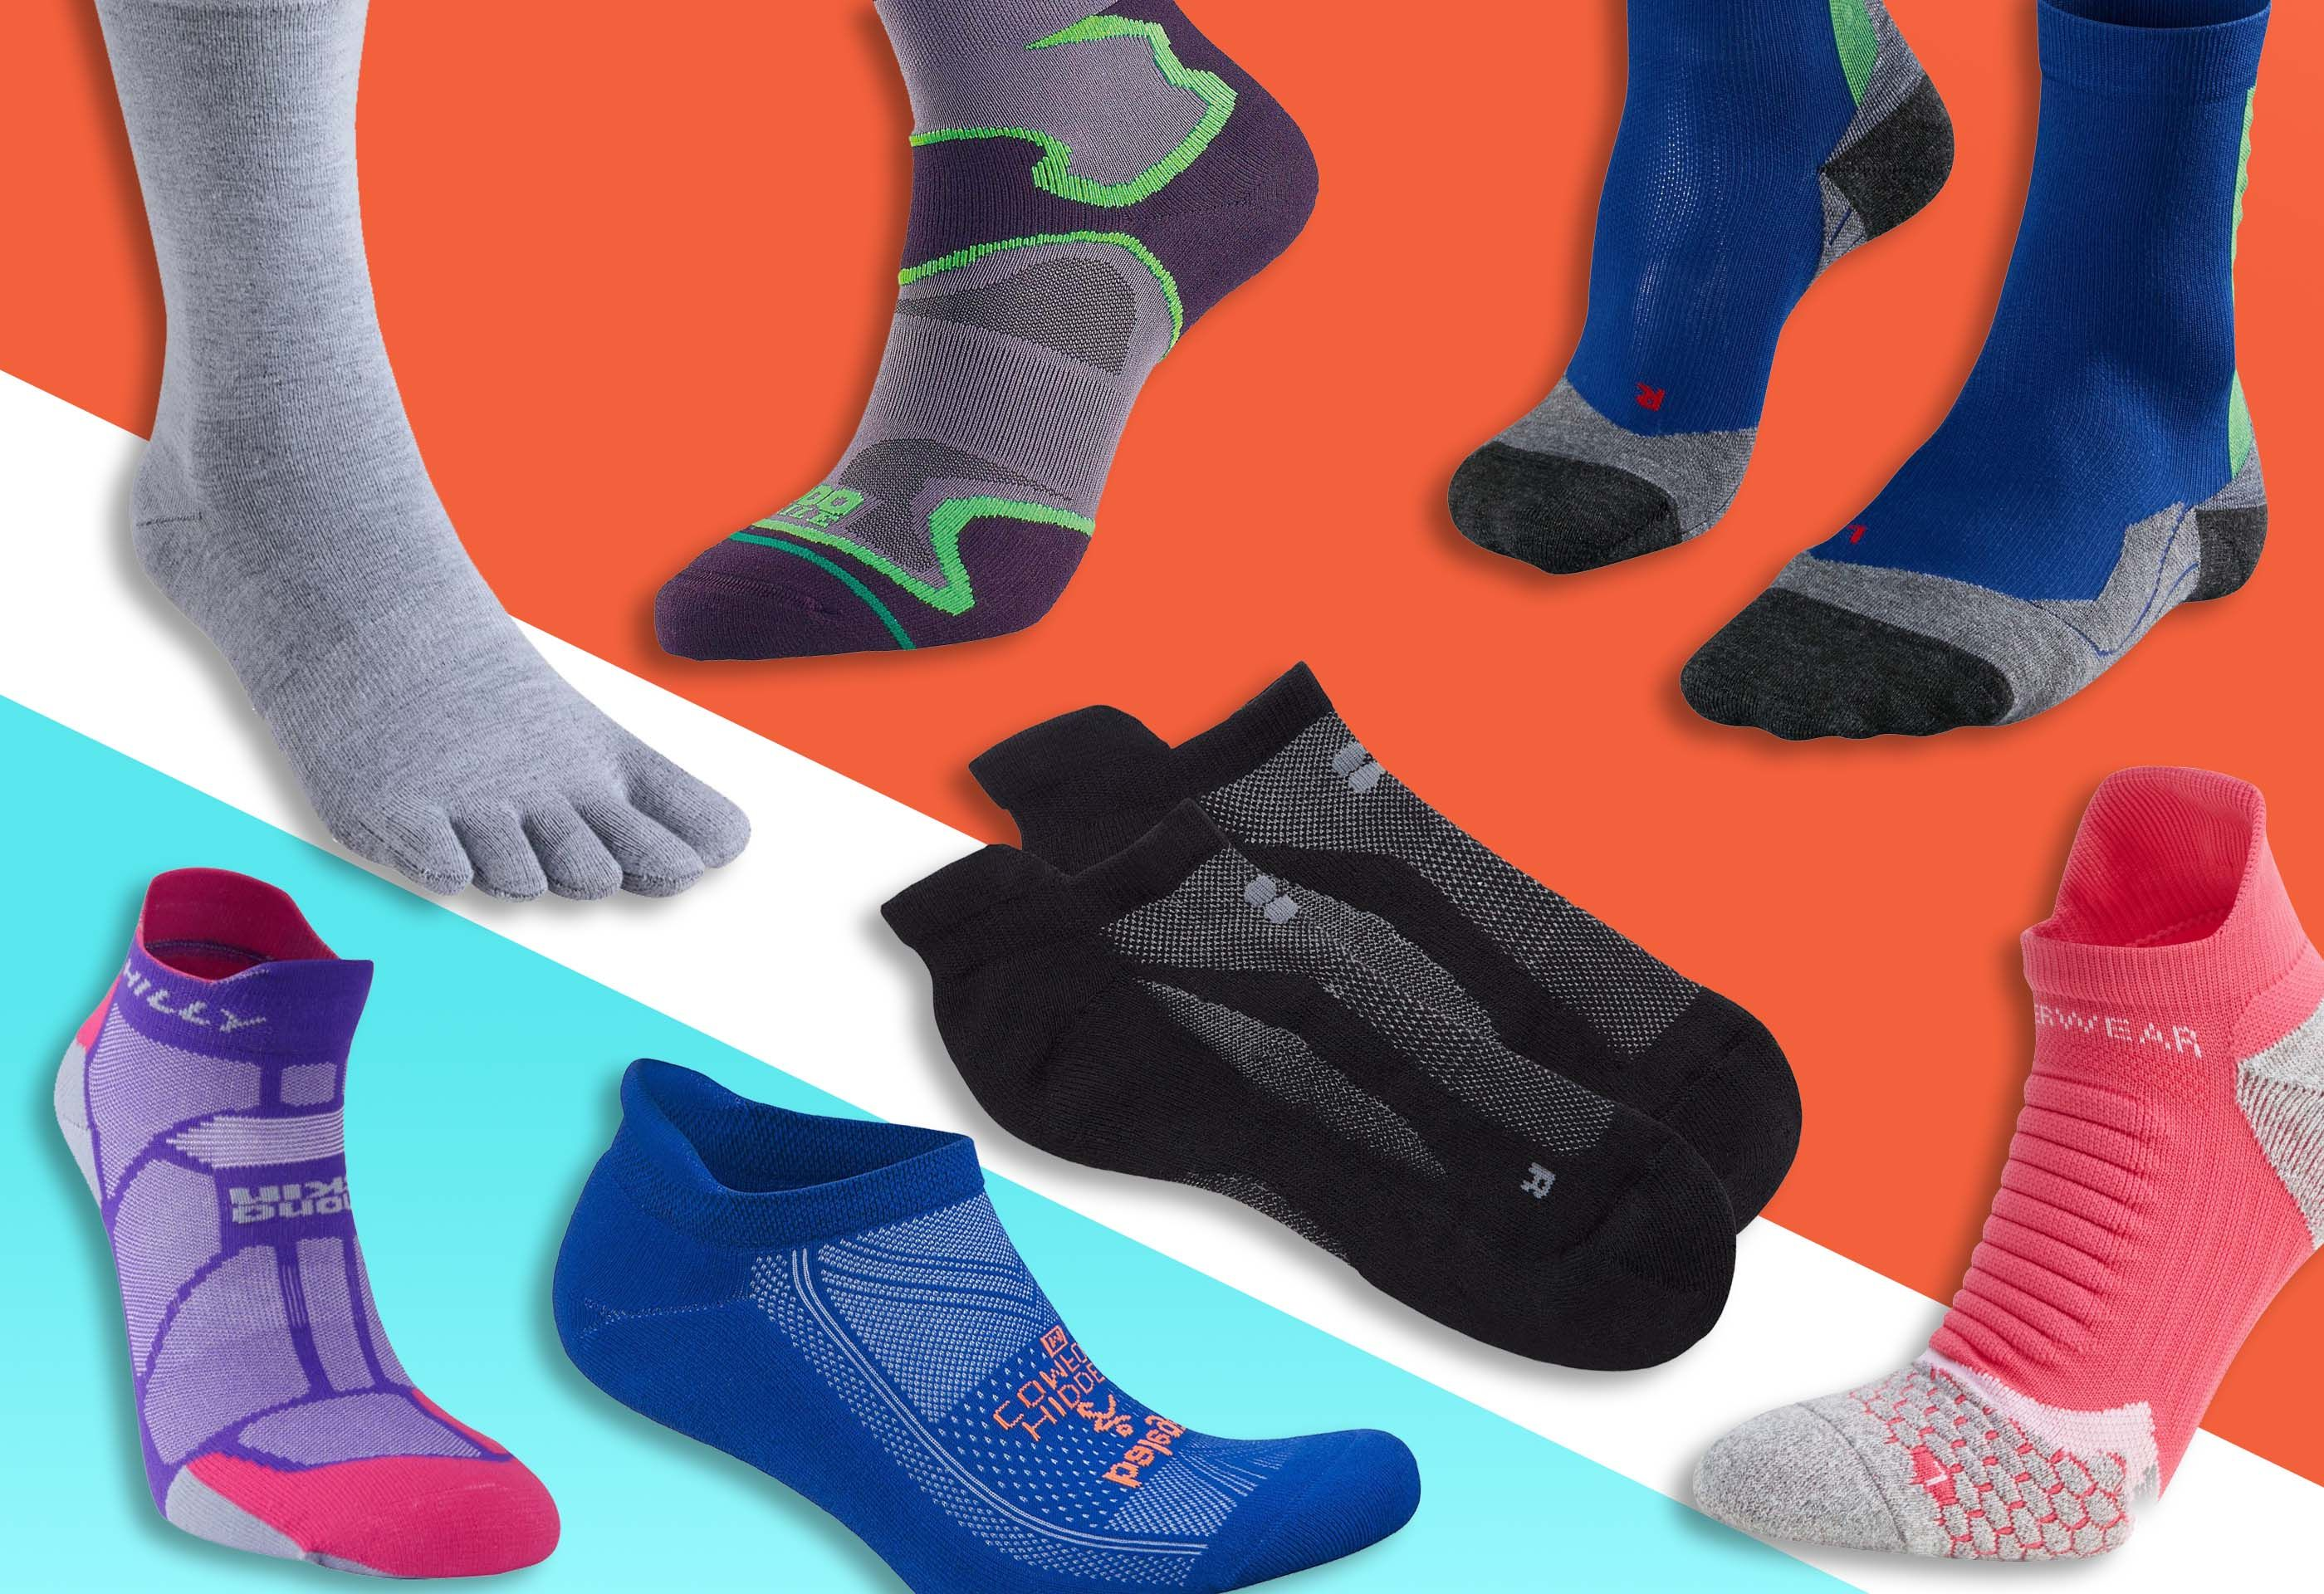 691d43425e1 Best socks for runners – the best compression